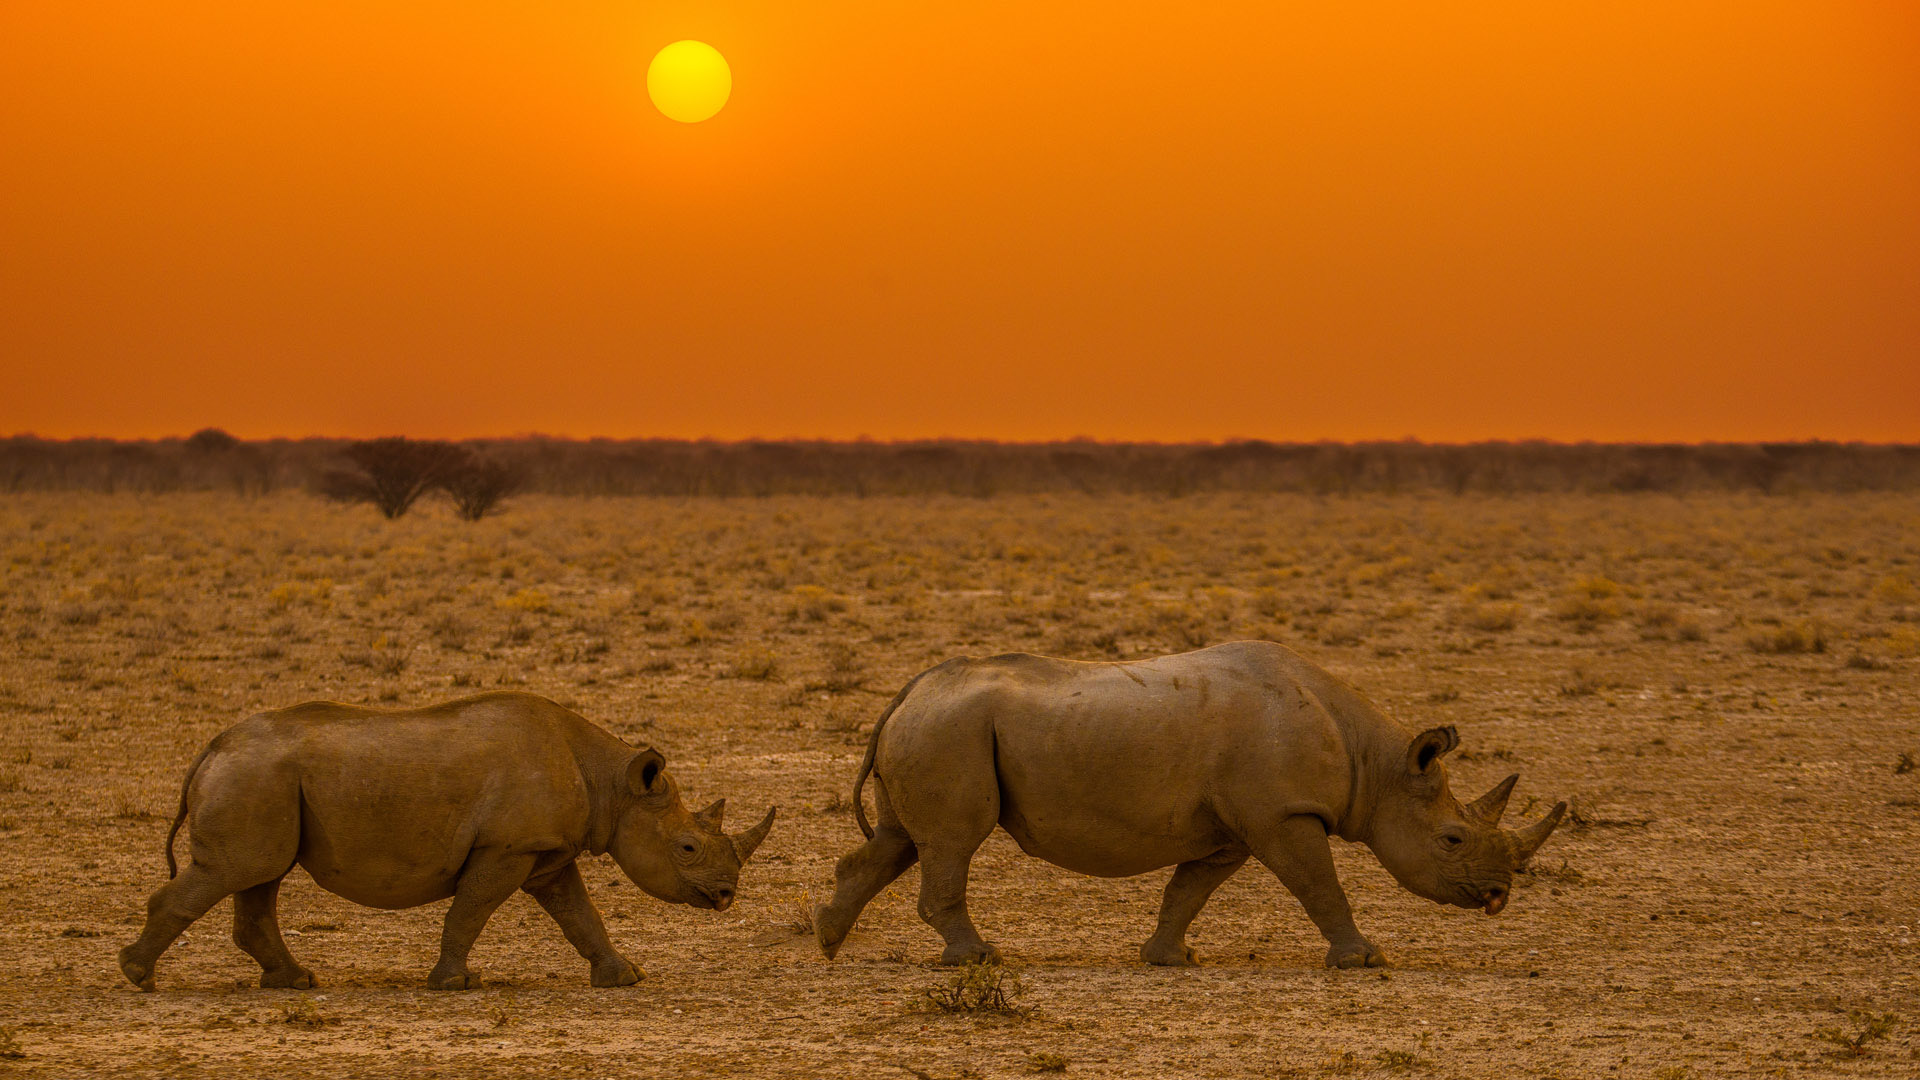 Namibia safari by Shannon wild